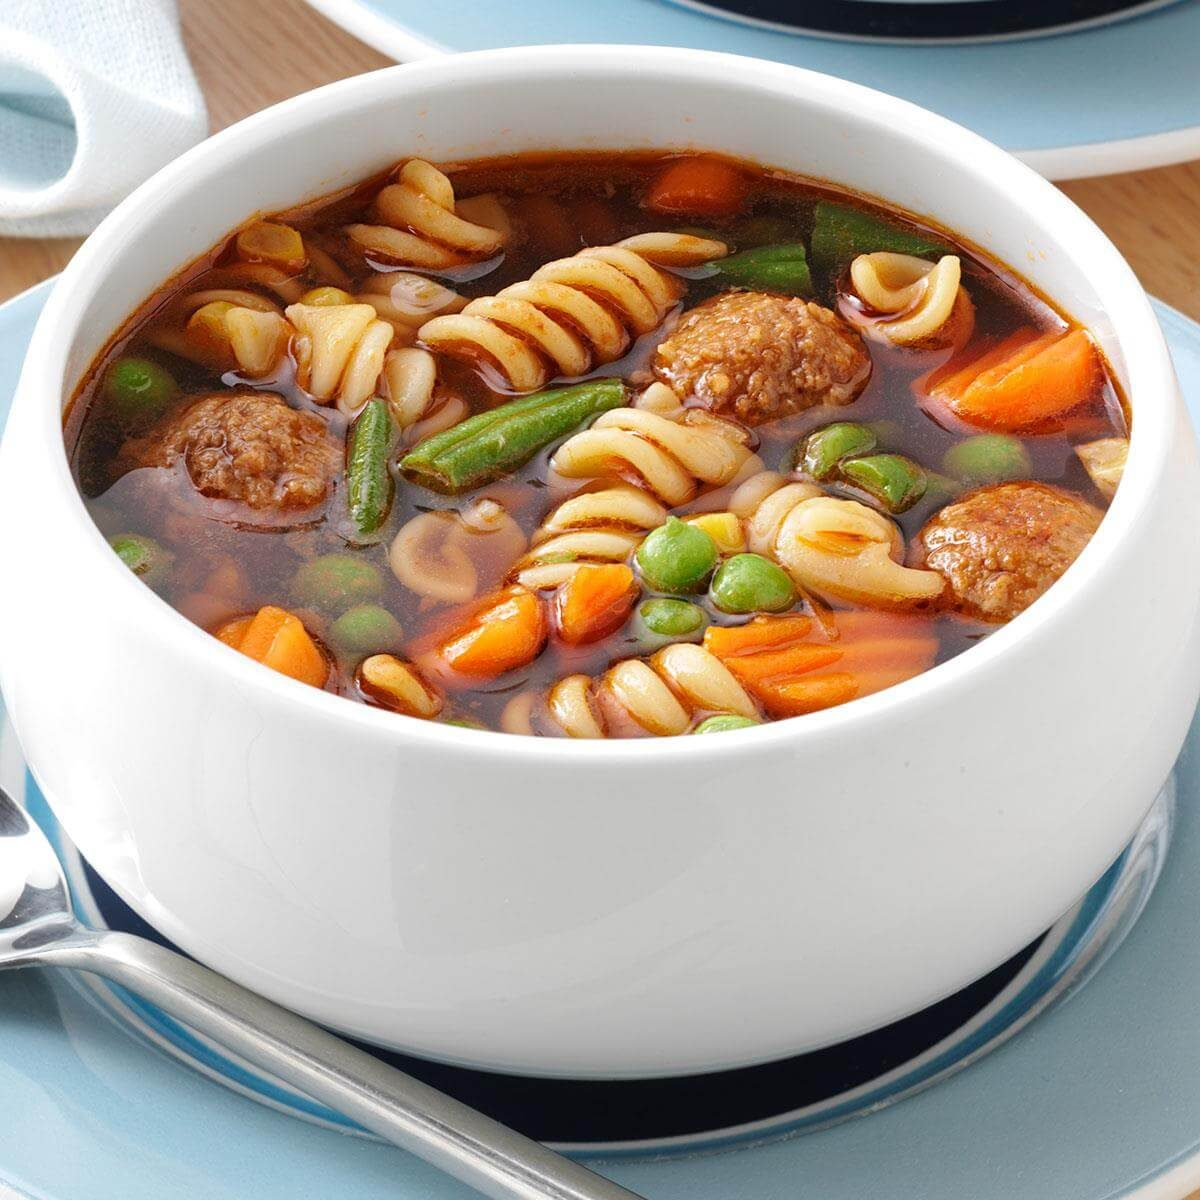 How To Cook Meatballs For Soup